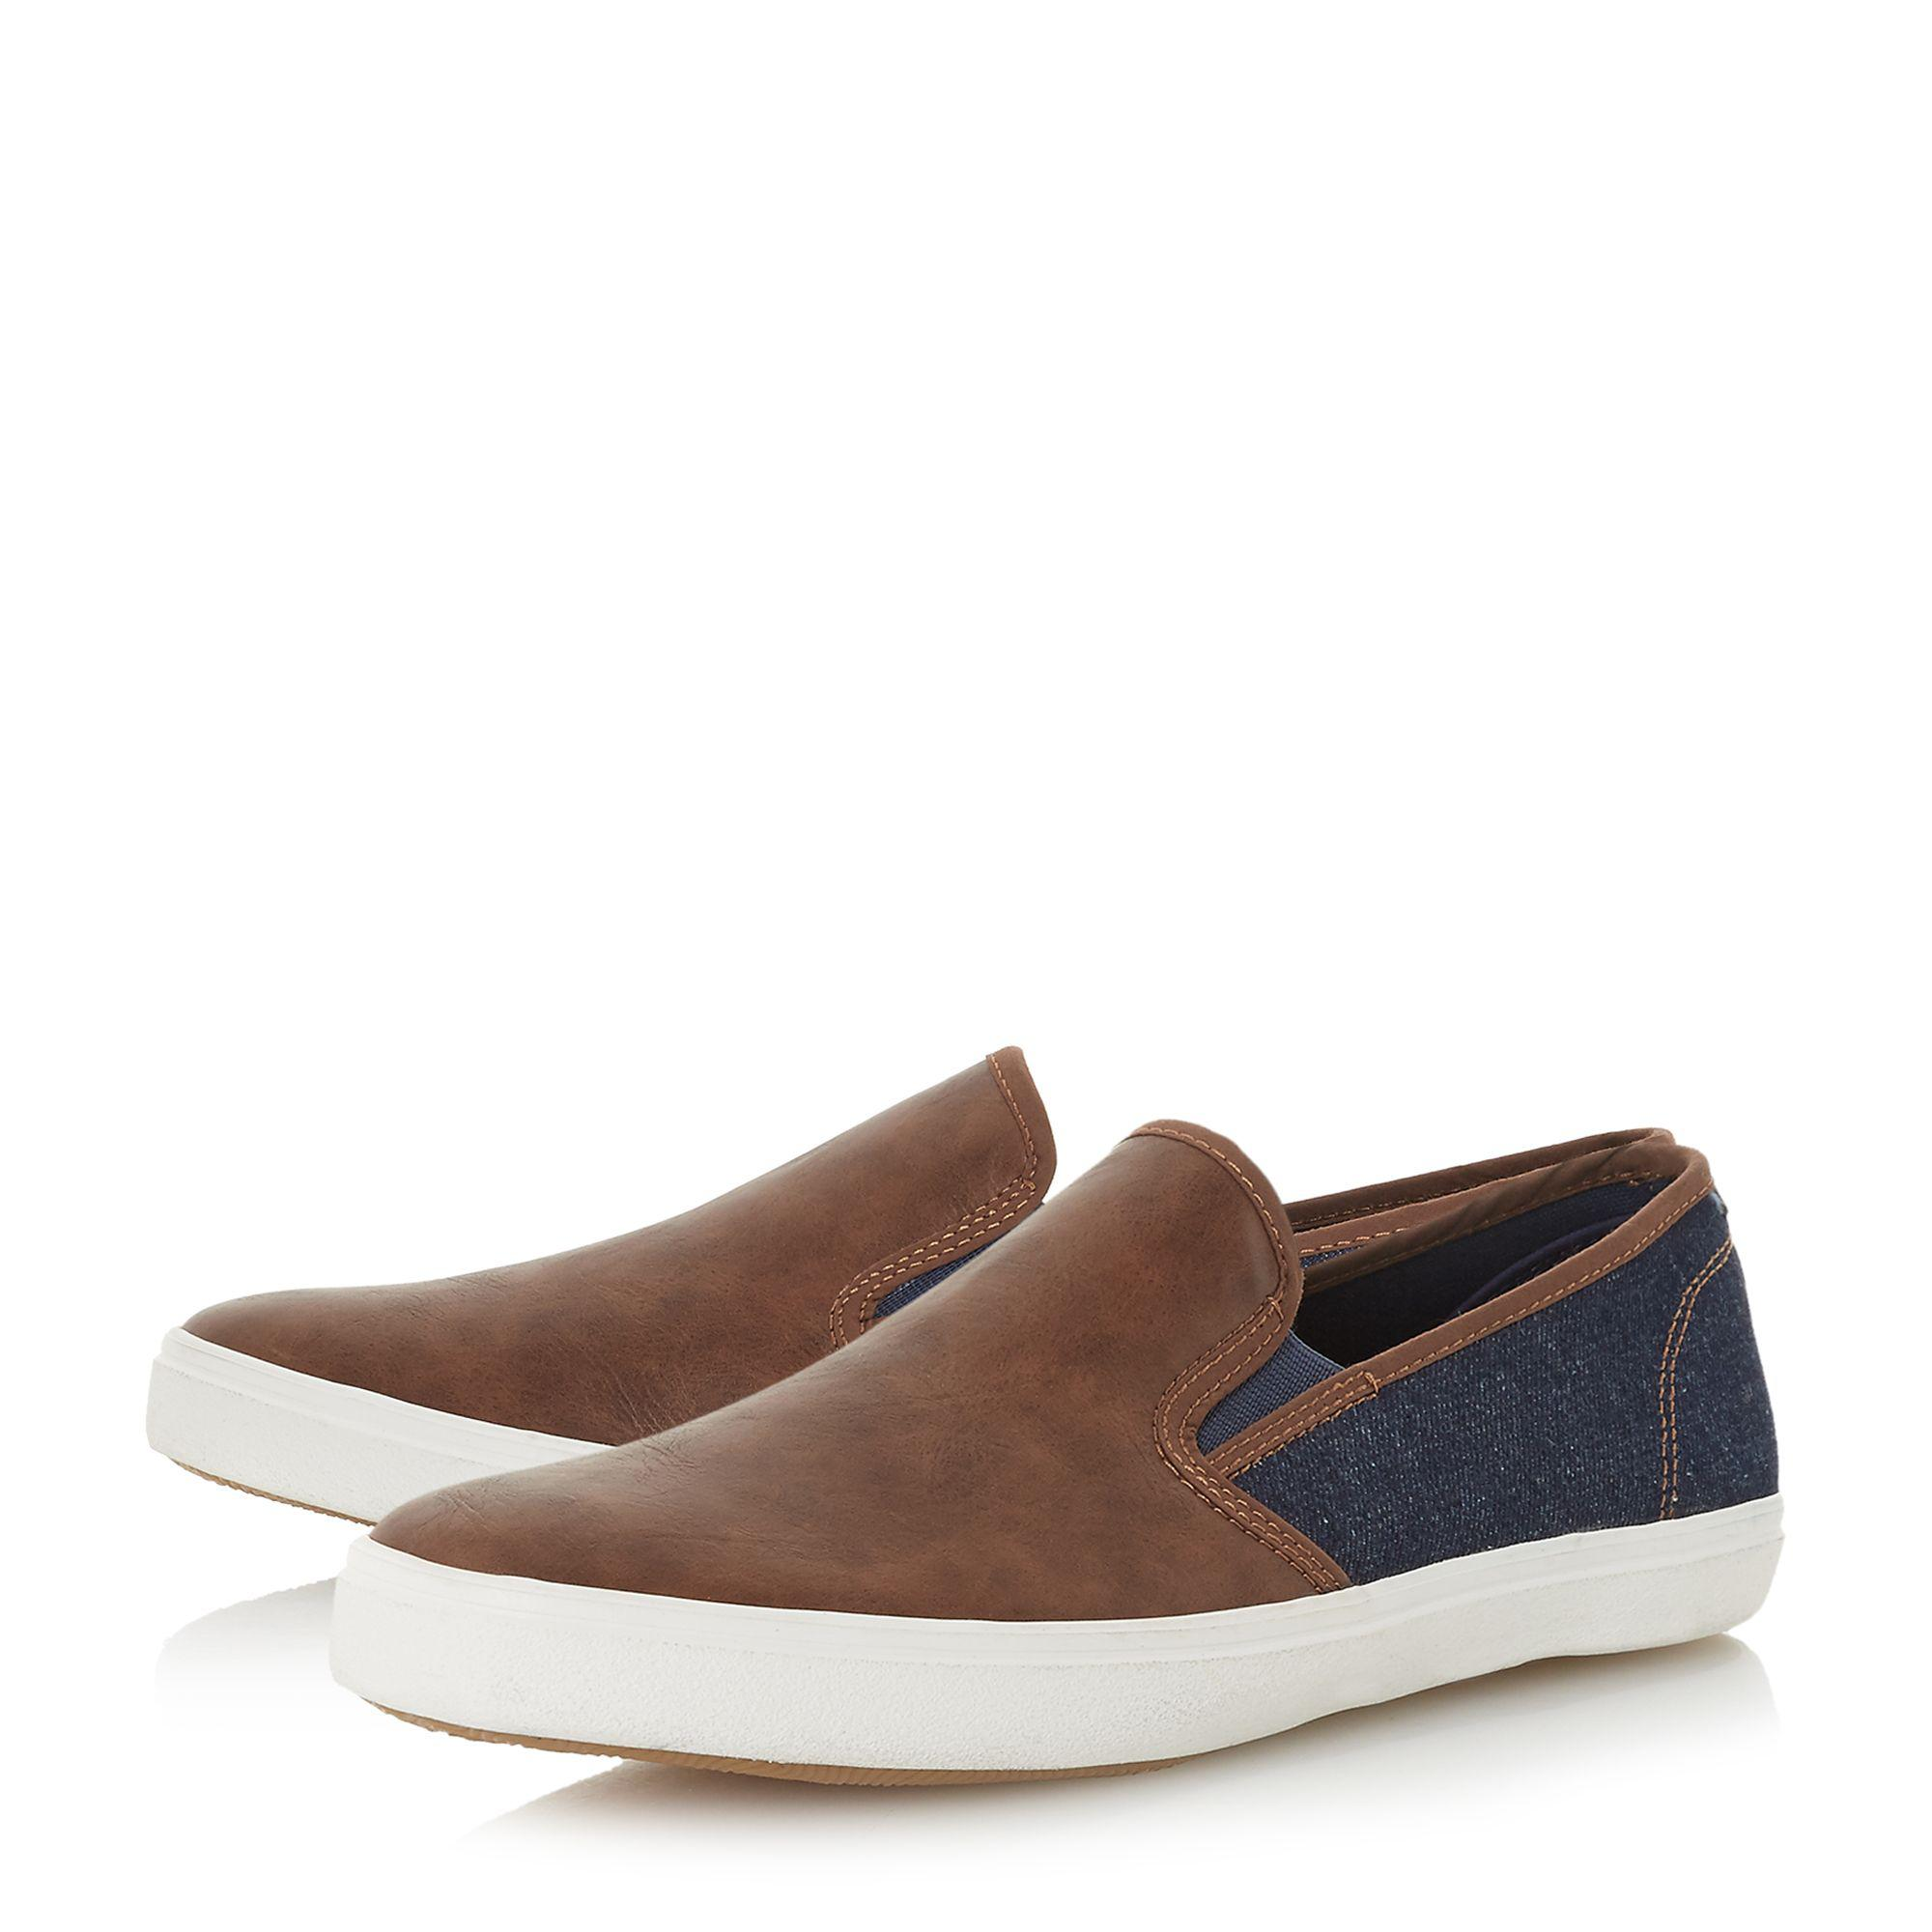 Navy 'Thierry' canvas contrast slip on trainers top quality cheap online free shipping 2015 clearance fashion Style DVVvxLjGj